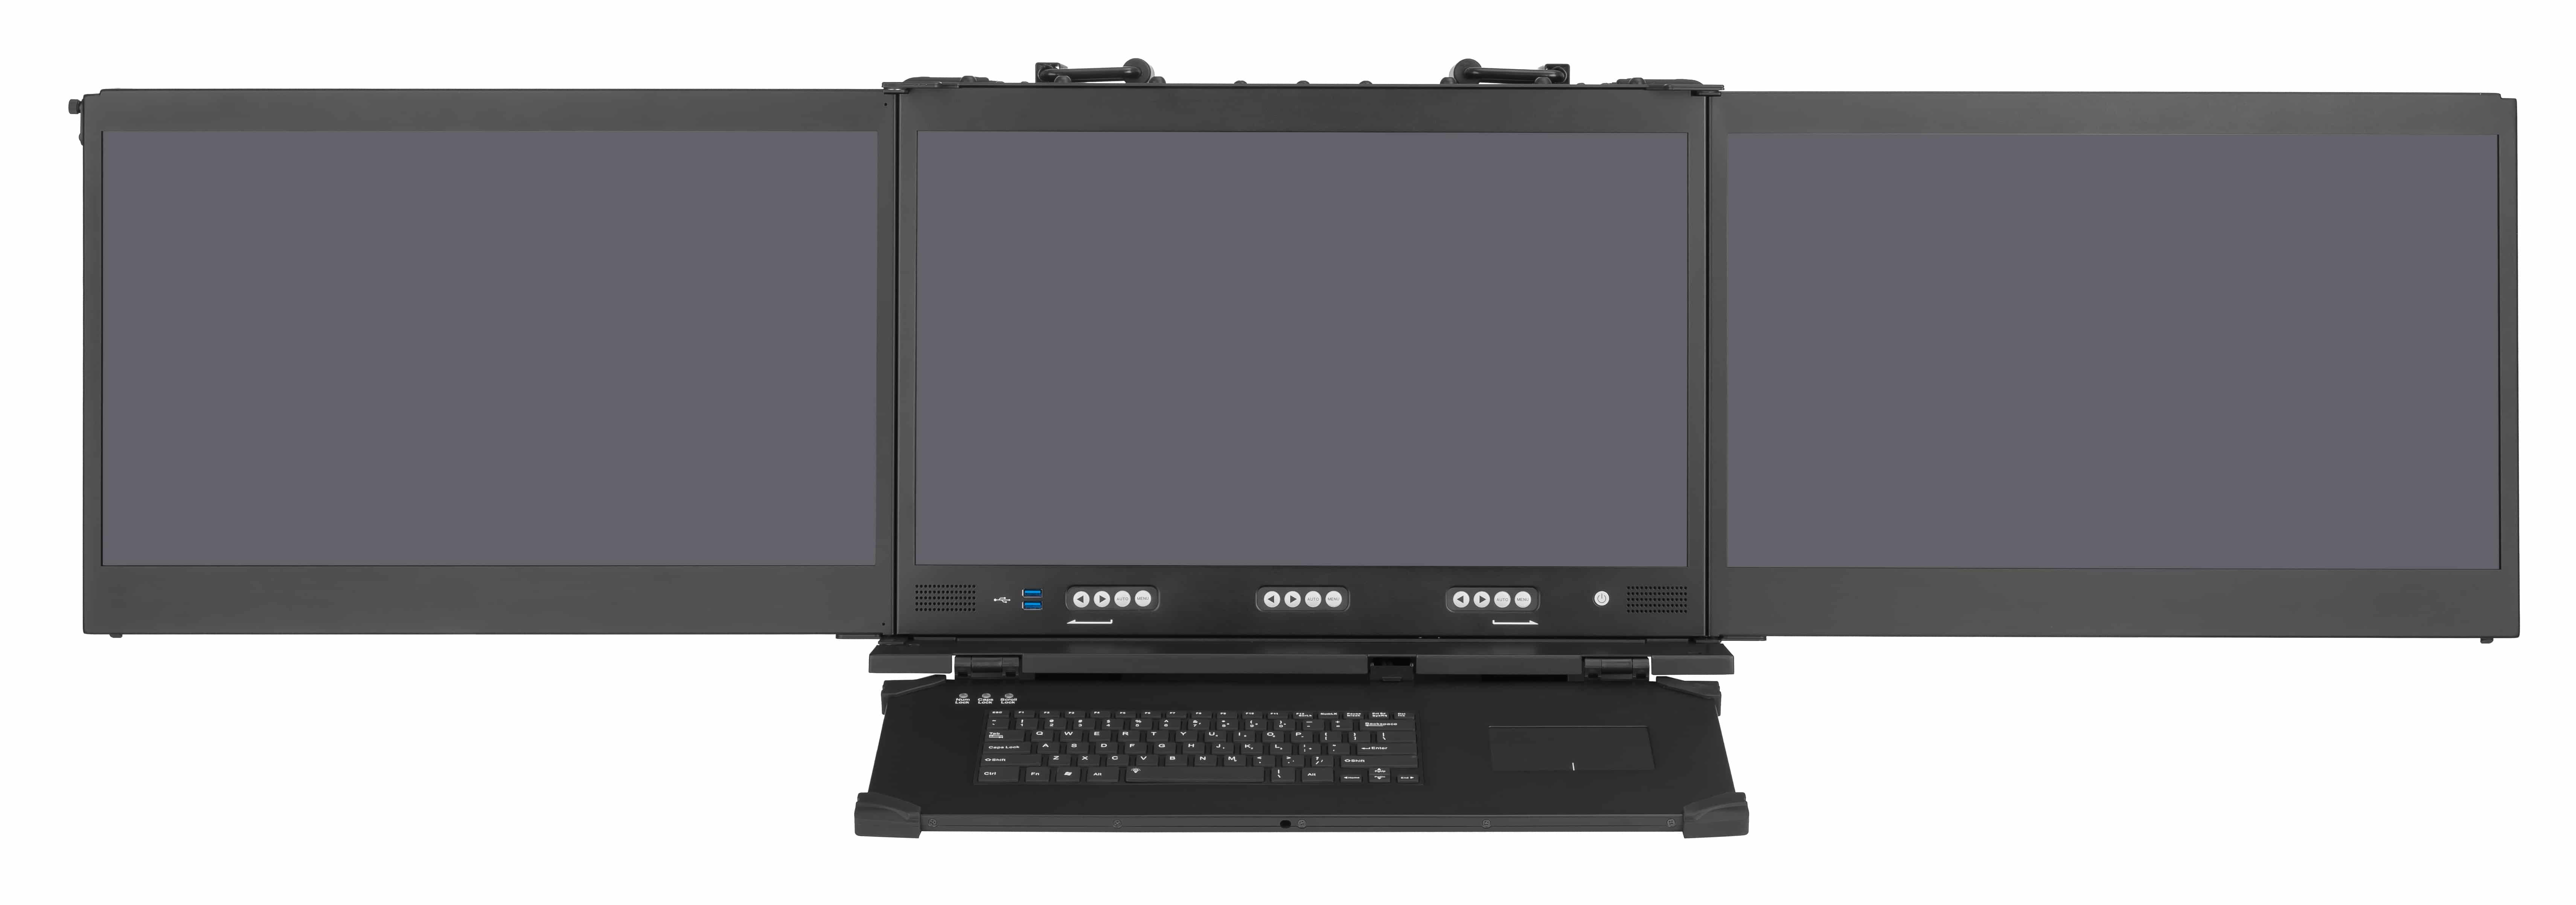 Triple screen rugged workstation with optional projected capacitive touch screen